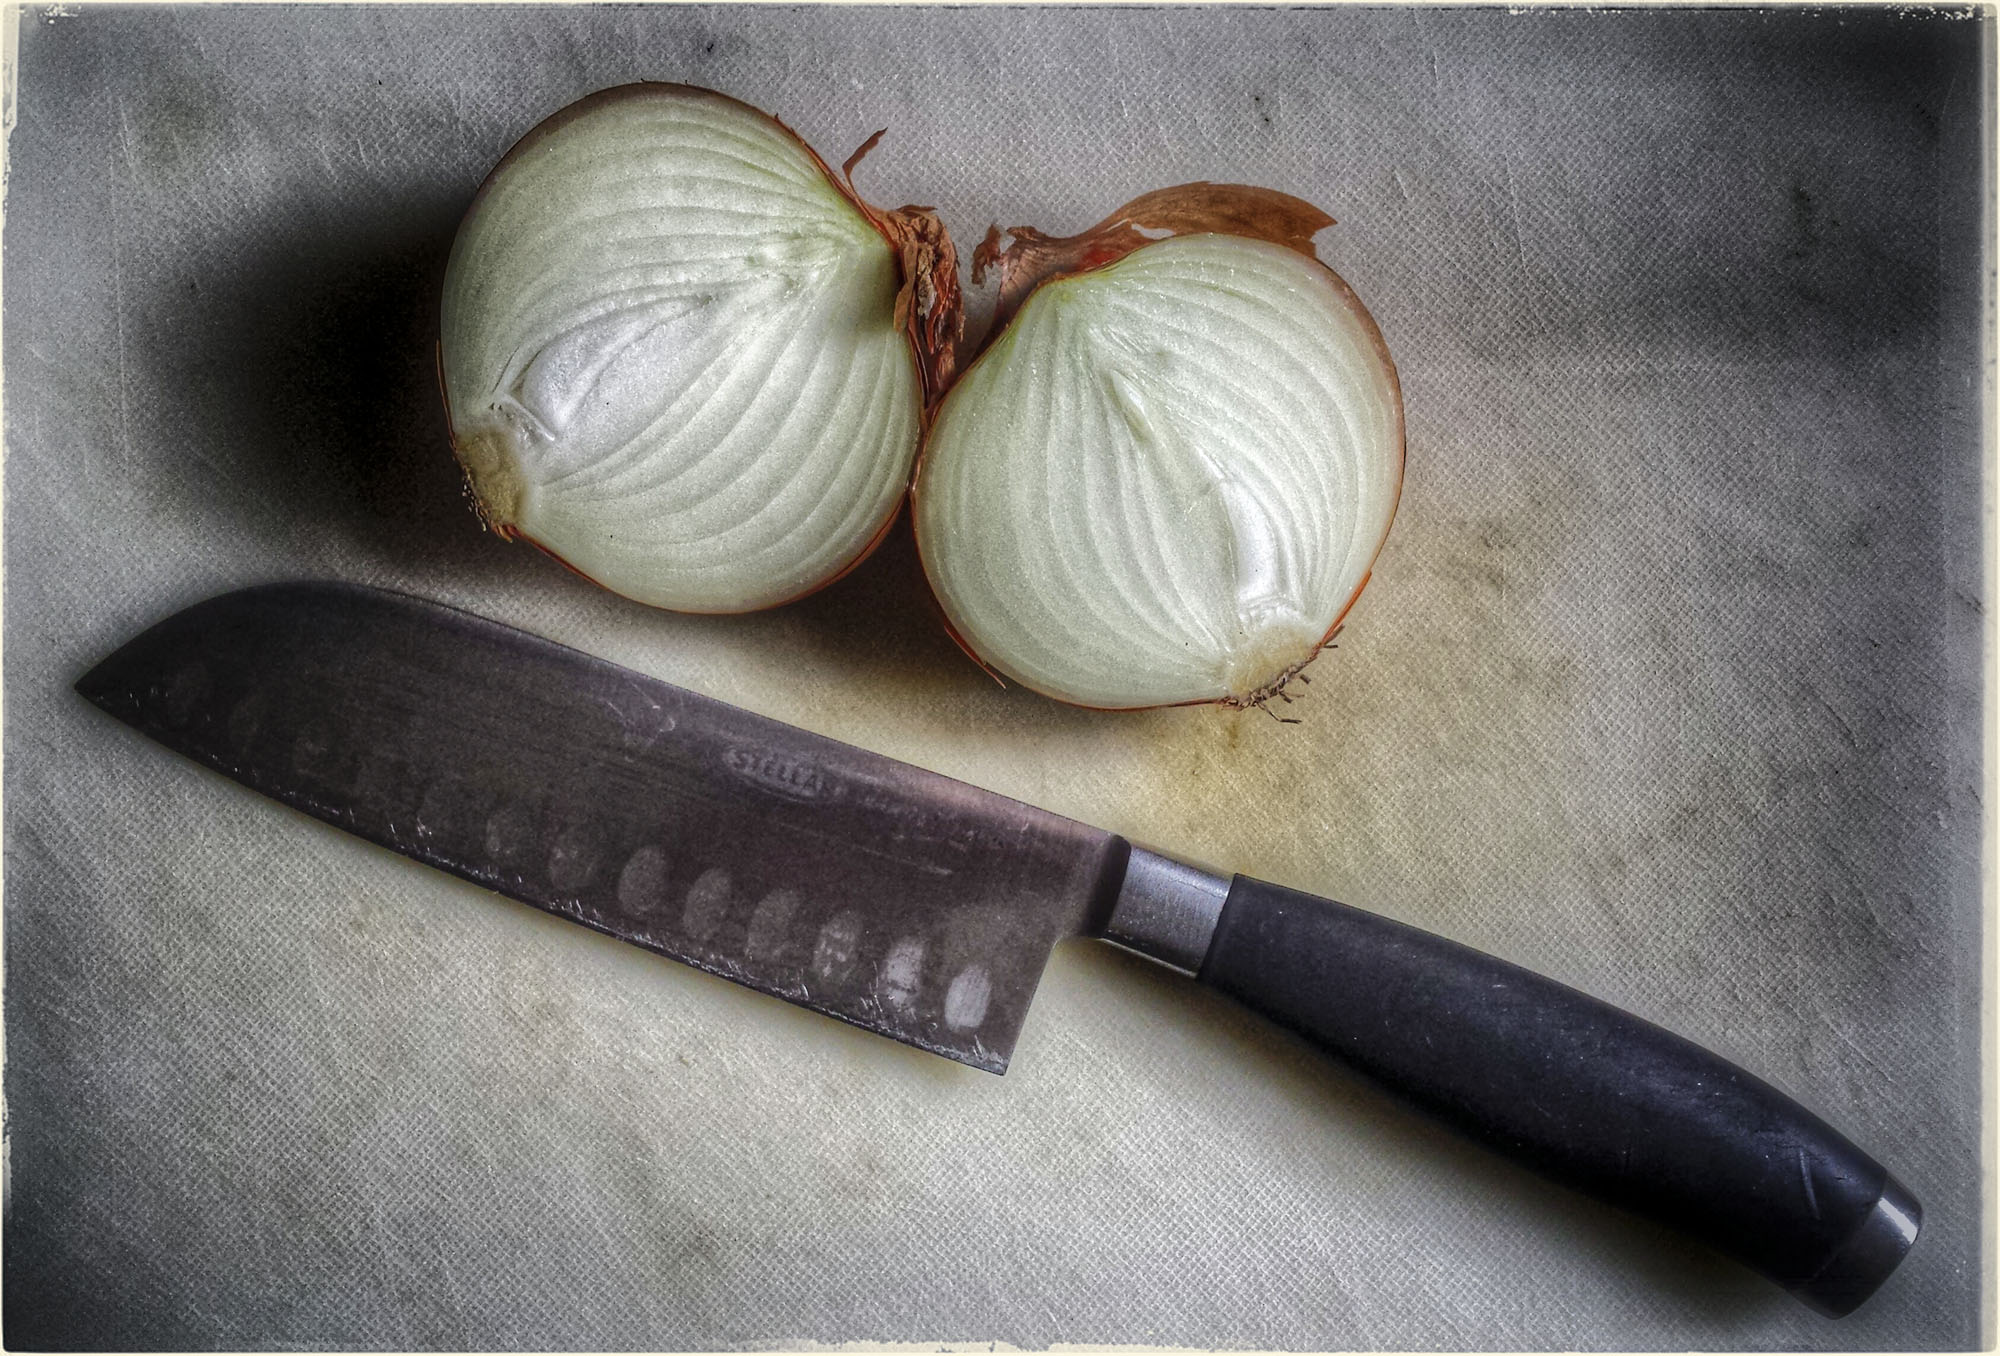 Knife with Onion